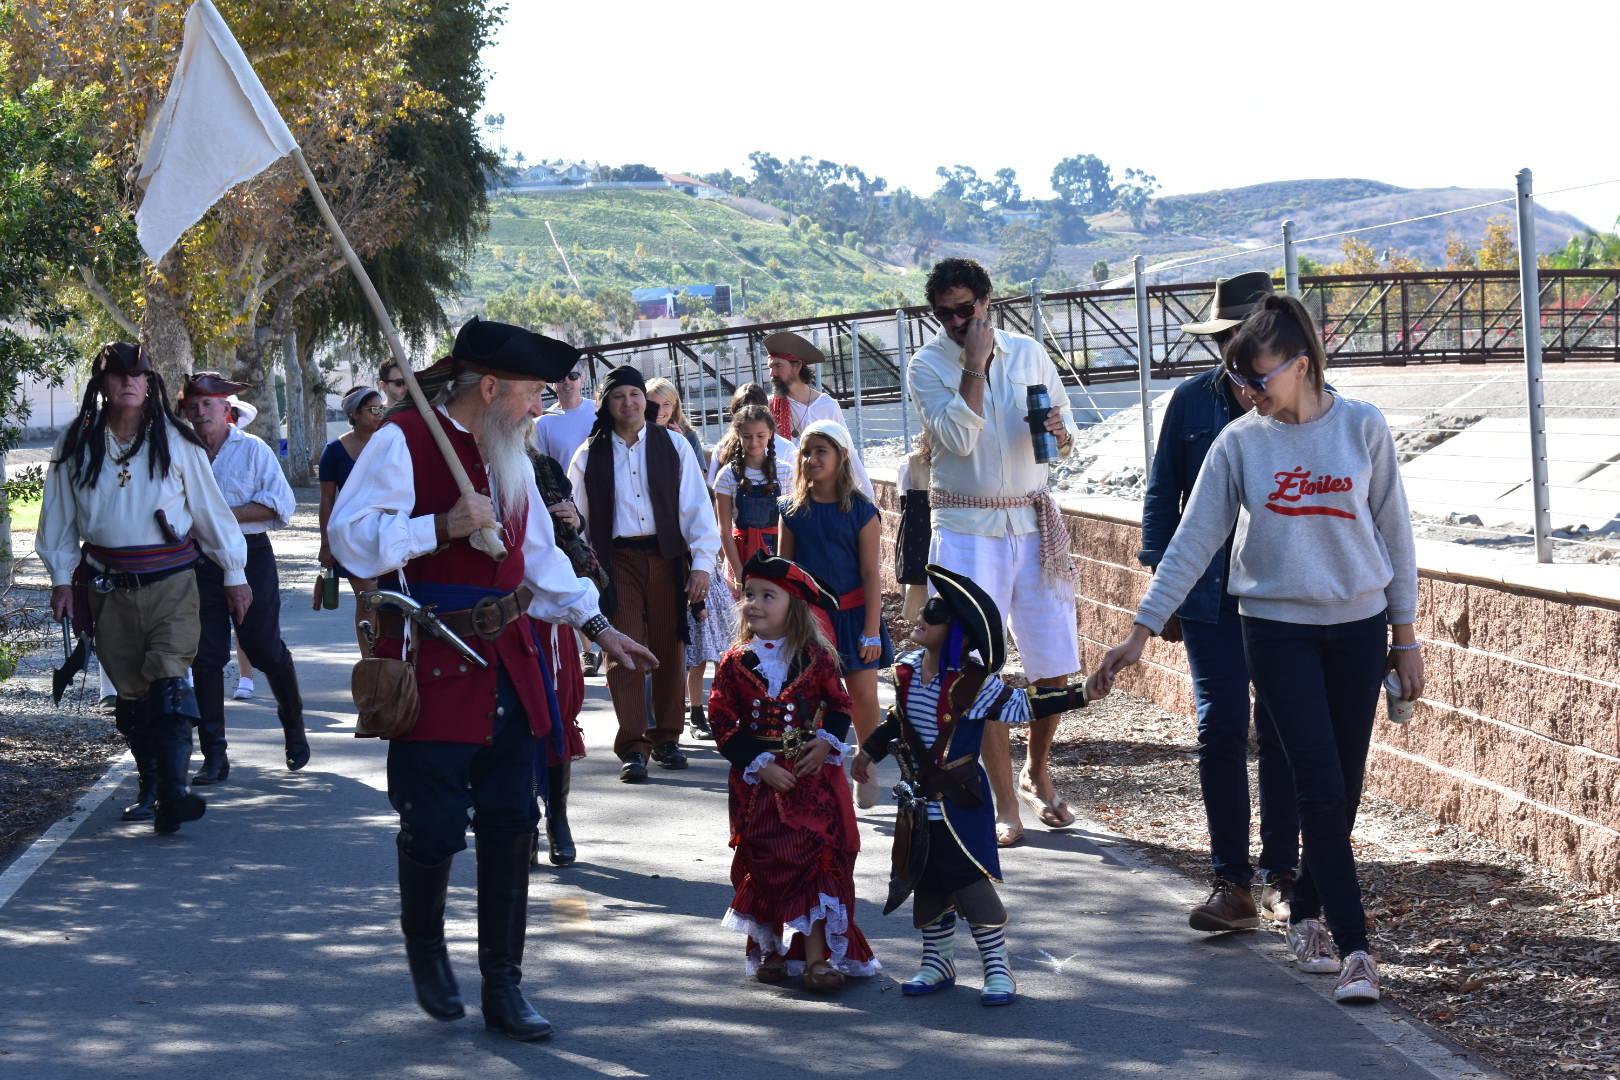 San Juan Capistrano residents and actors dressed as pirates march from Descanso Park to the Los Rios District on Saturday, Nov. 3, to commemorate the 200th anniversary of Hippolyte Bouchard's raid on San Juan Capistrano. Photo: Alex Groves